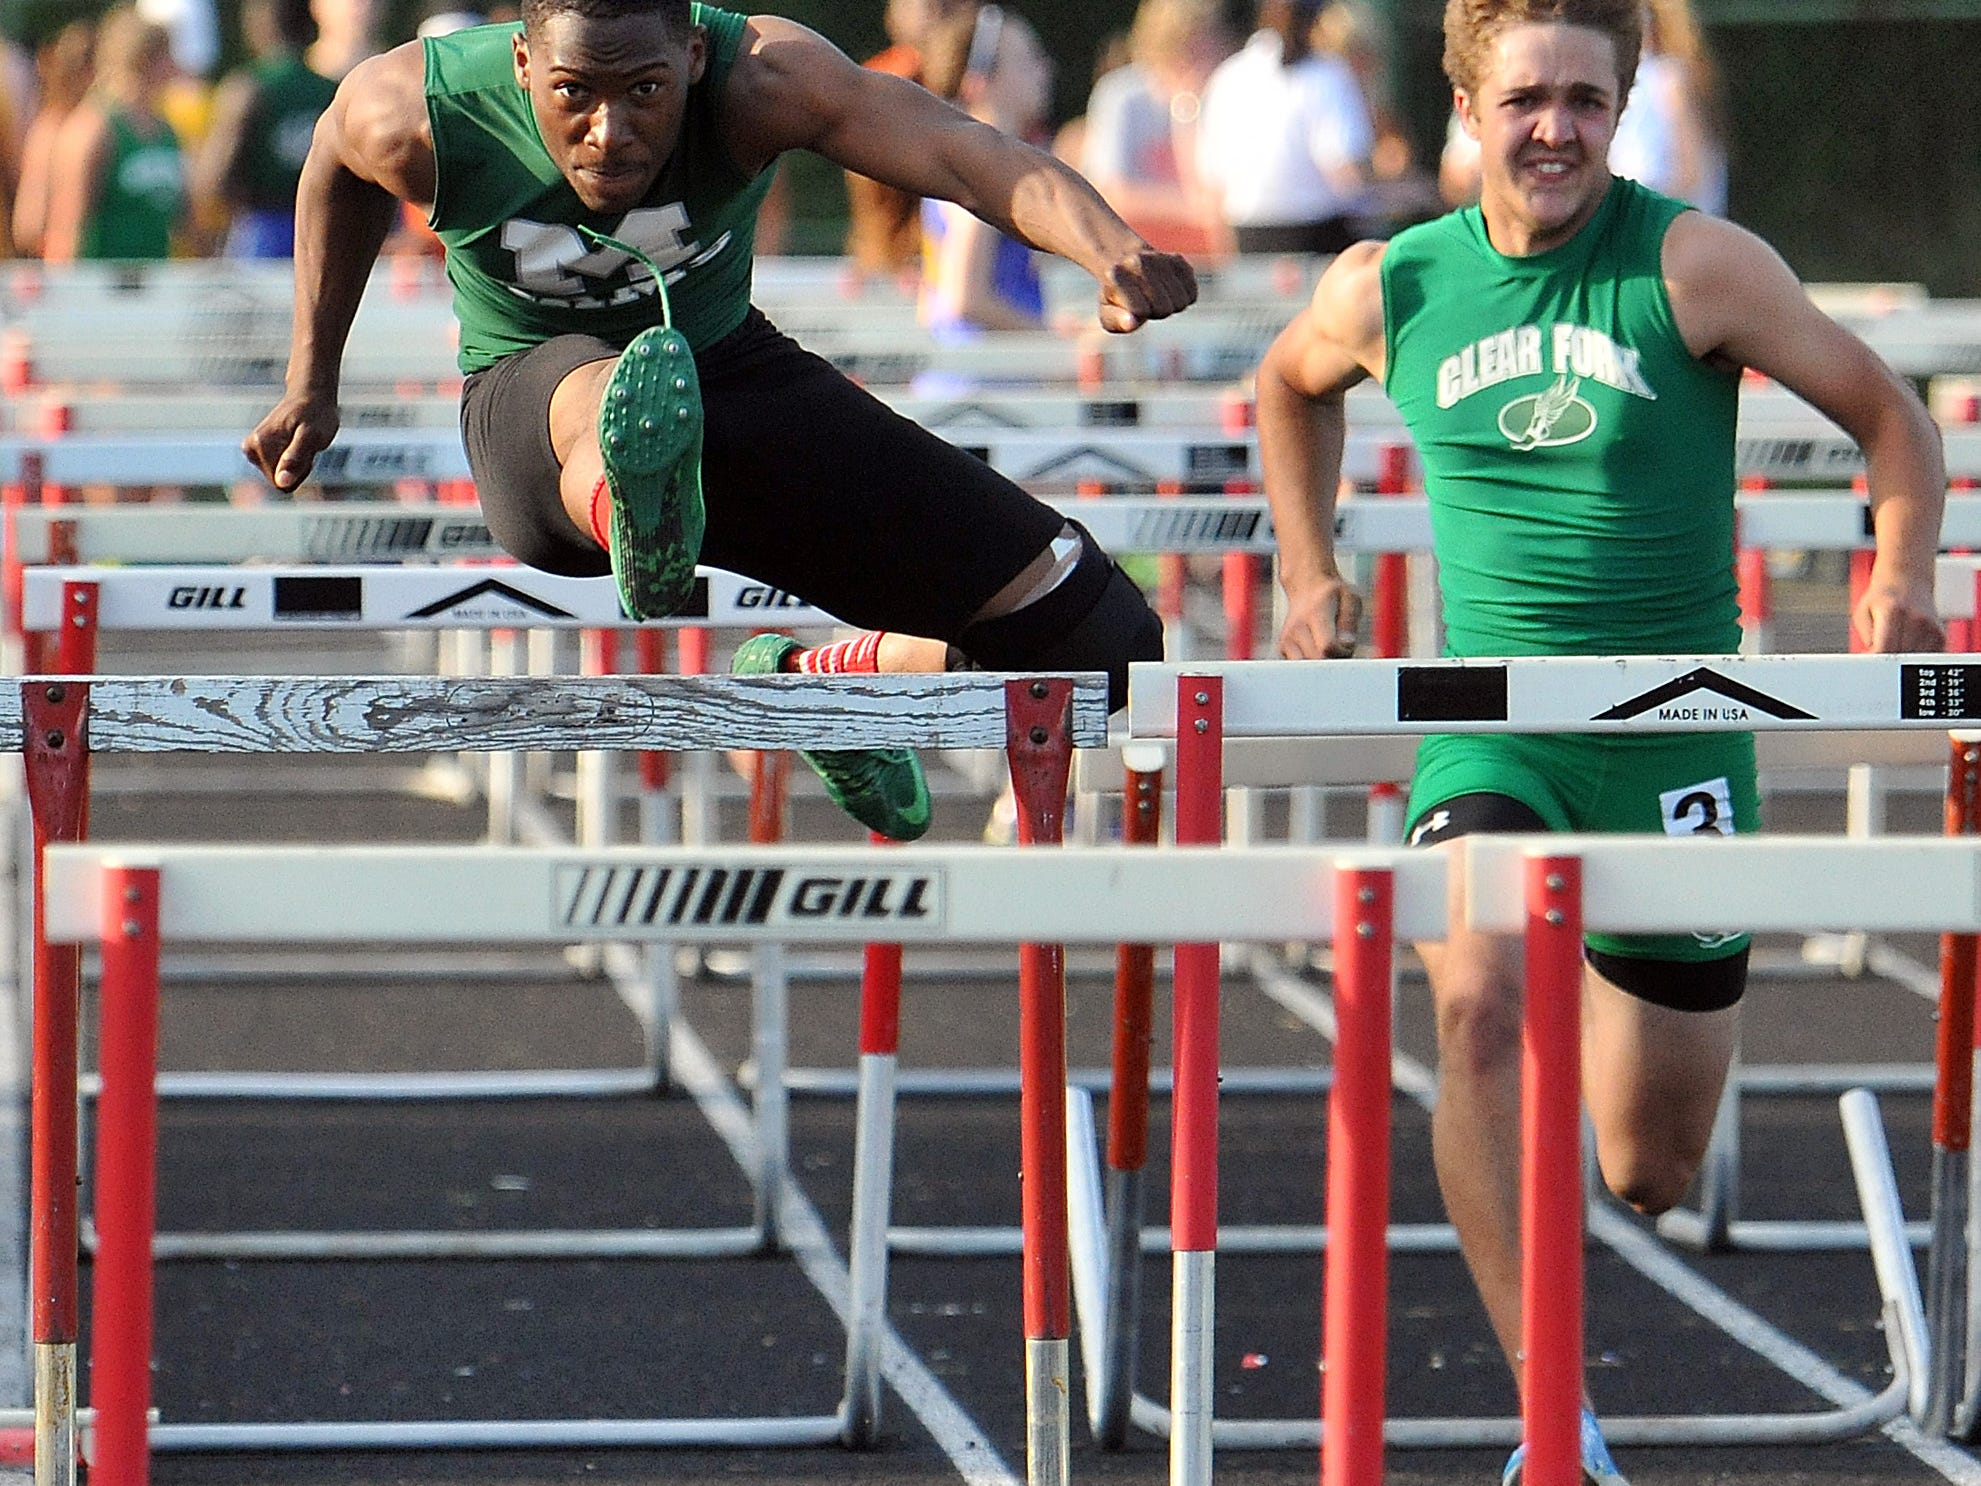 Madison's Frank Douglas clears a hurdle during the boys 100 Meter Hurdles at the OCC track meet at Madison High School Friday.